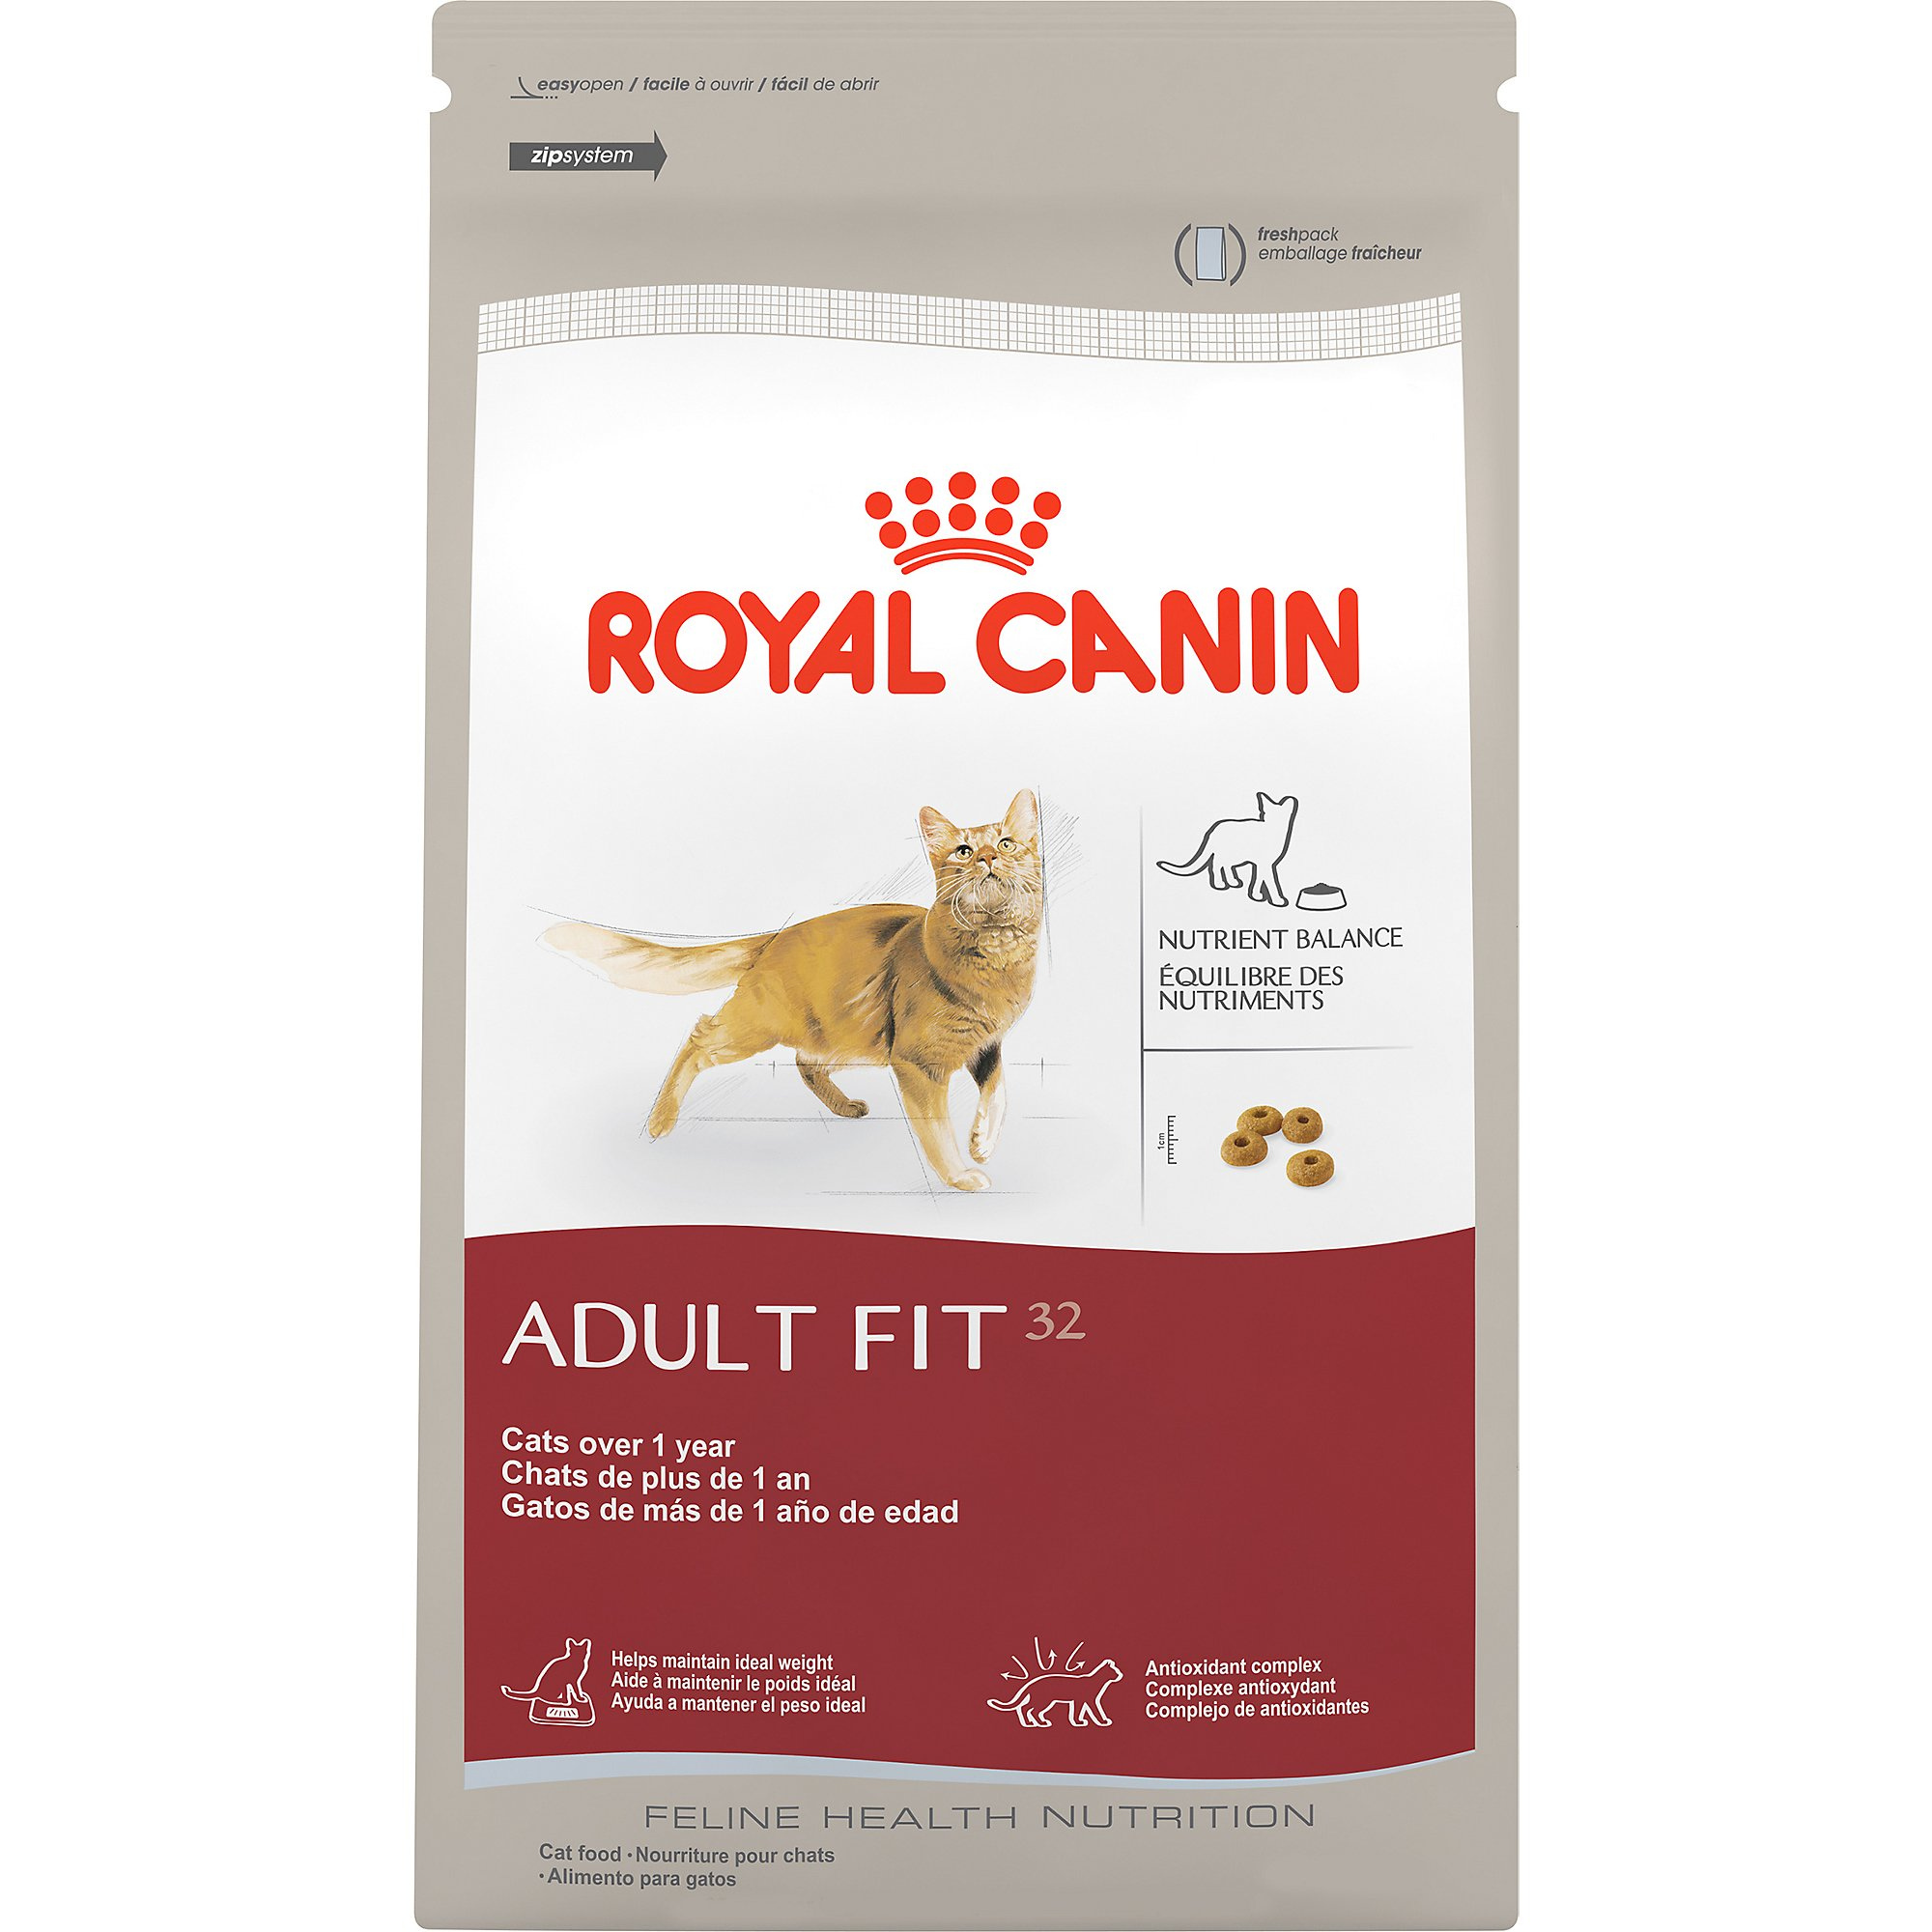 royal canin feline health nutrition adult fit 32 petco store. Black Bedroom Furniture Sets. Home Design Ideas